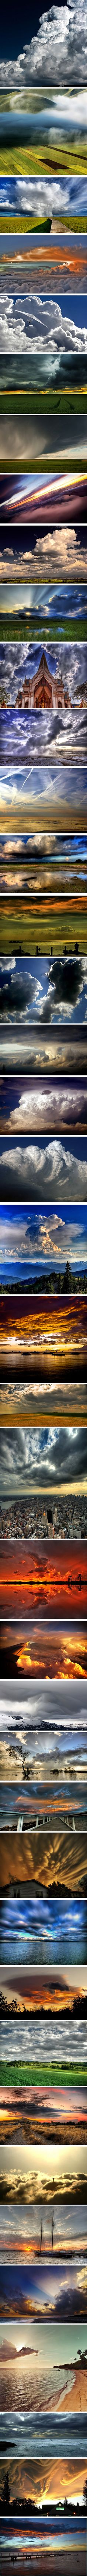 Mostly cumulus in various stages of life. Beautiful.